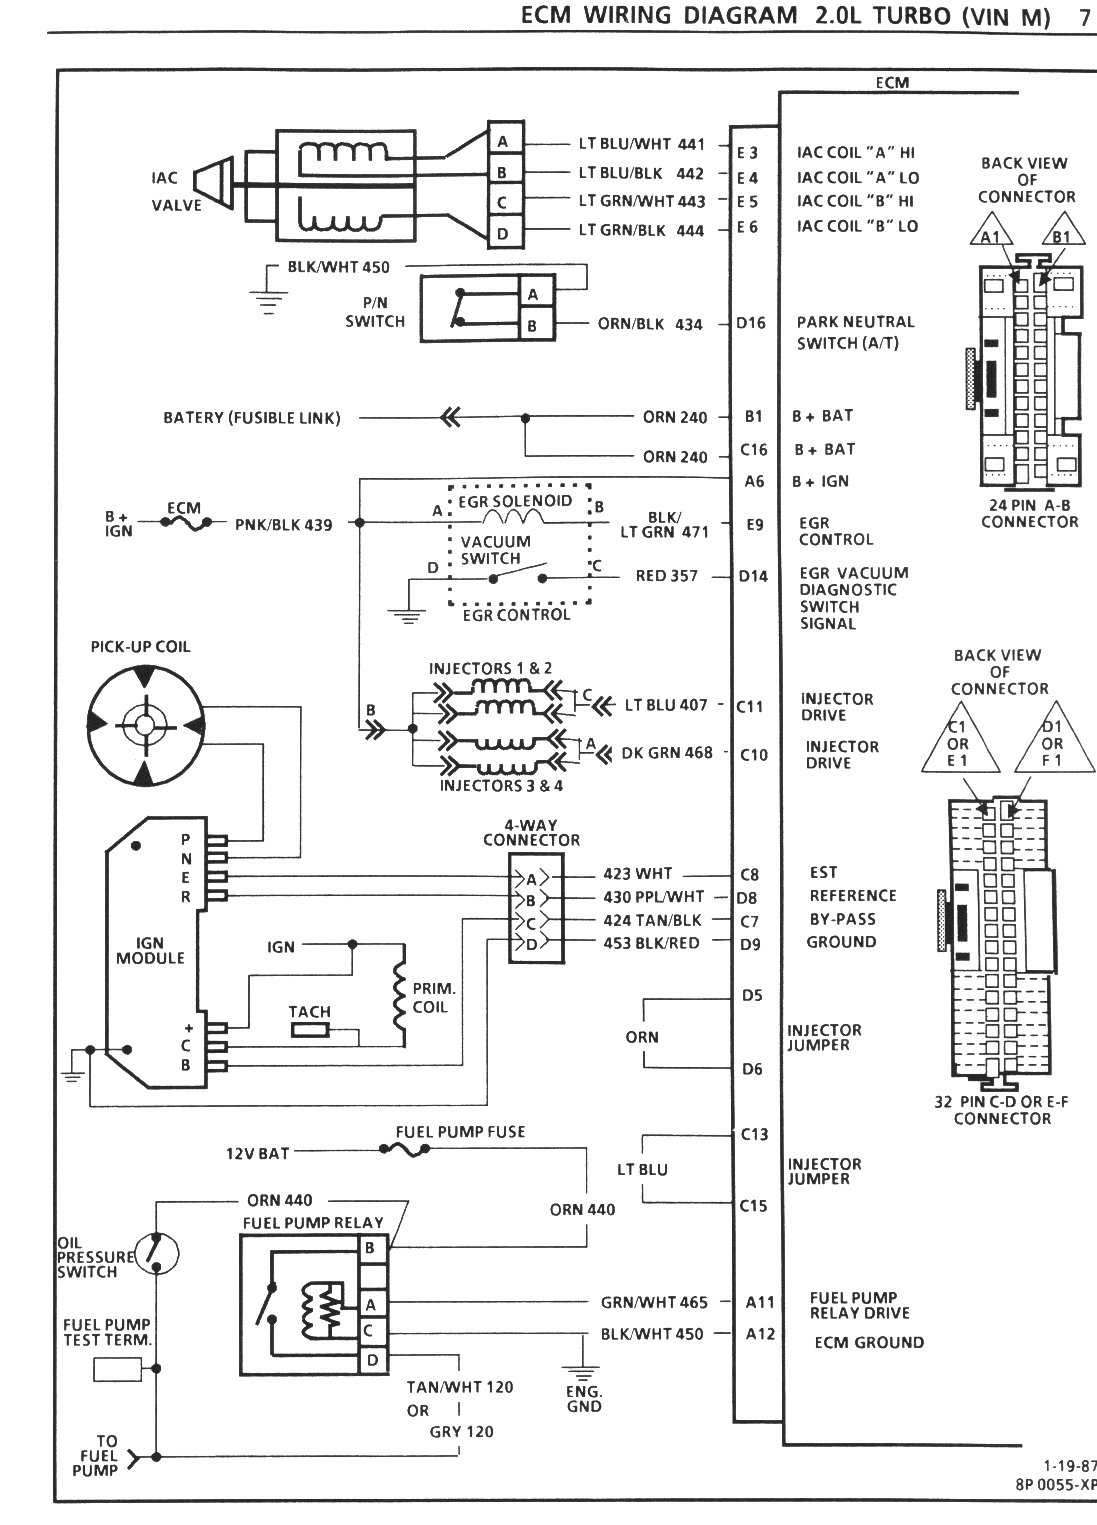 nwstp forum ecm wire diagram 2